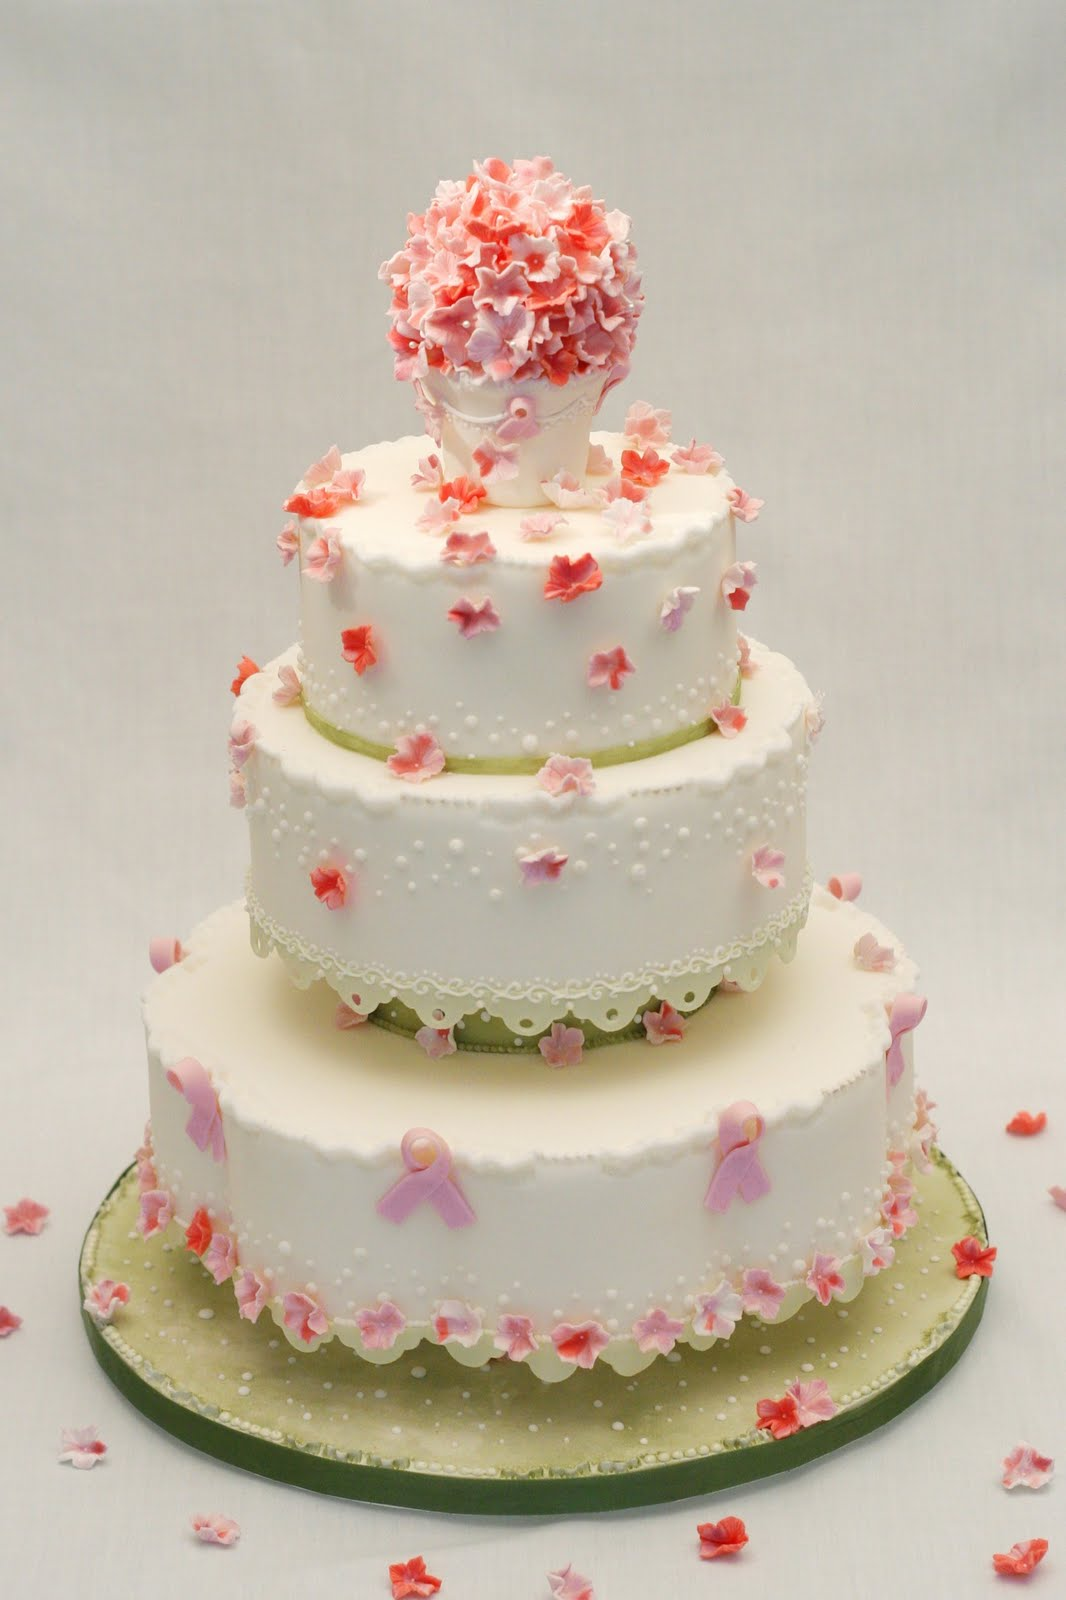 Wedding cake designs for your wedding Modern Wedding ...